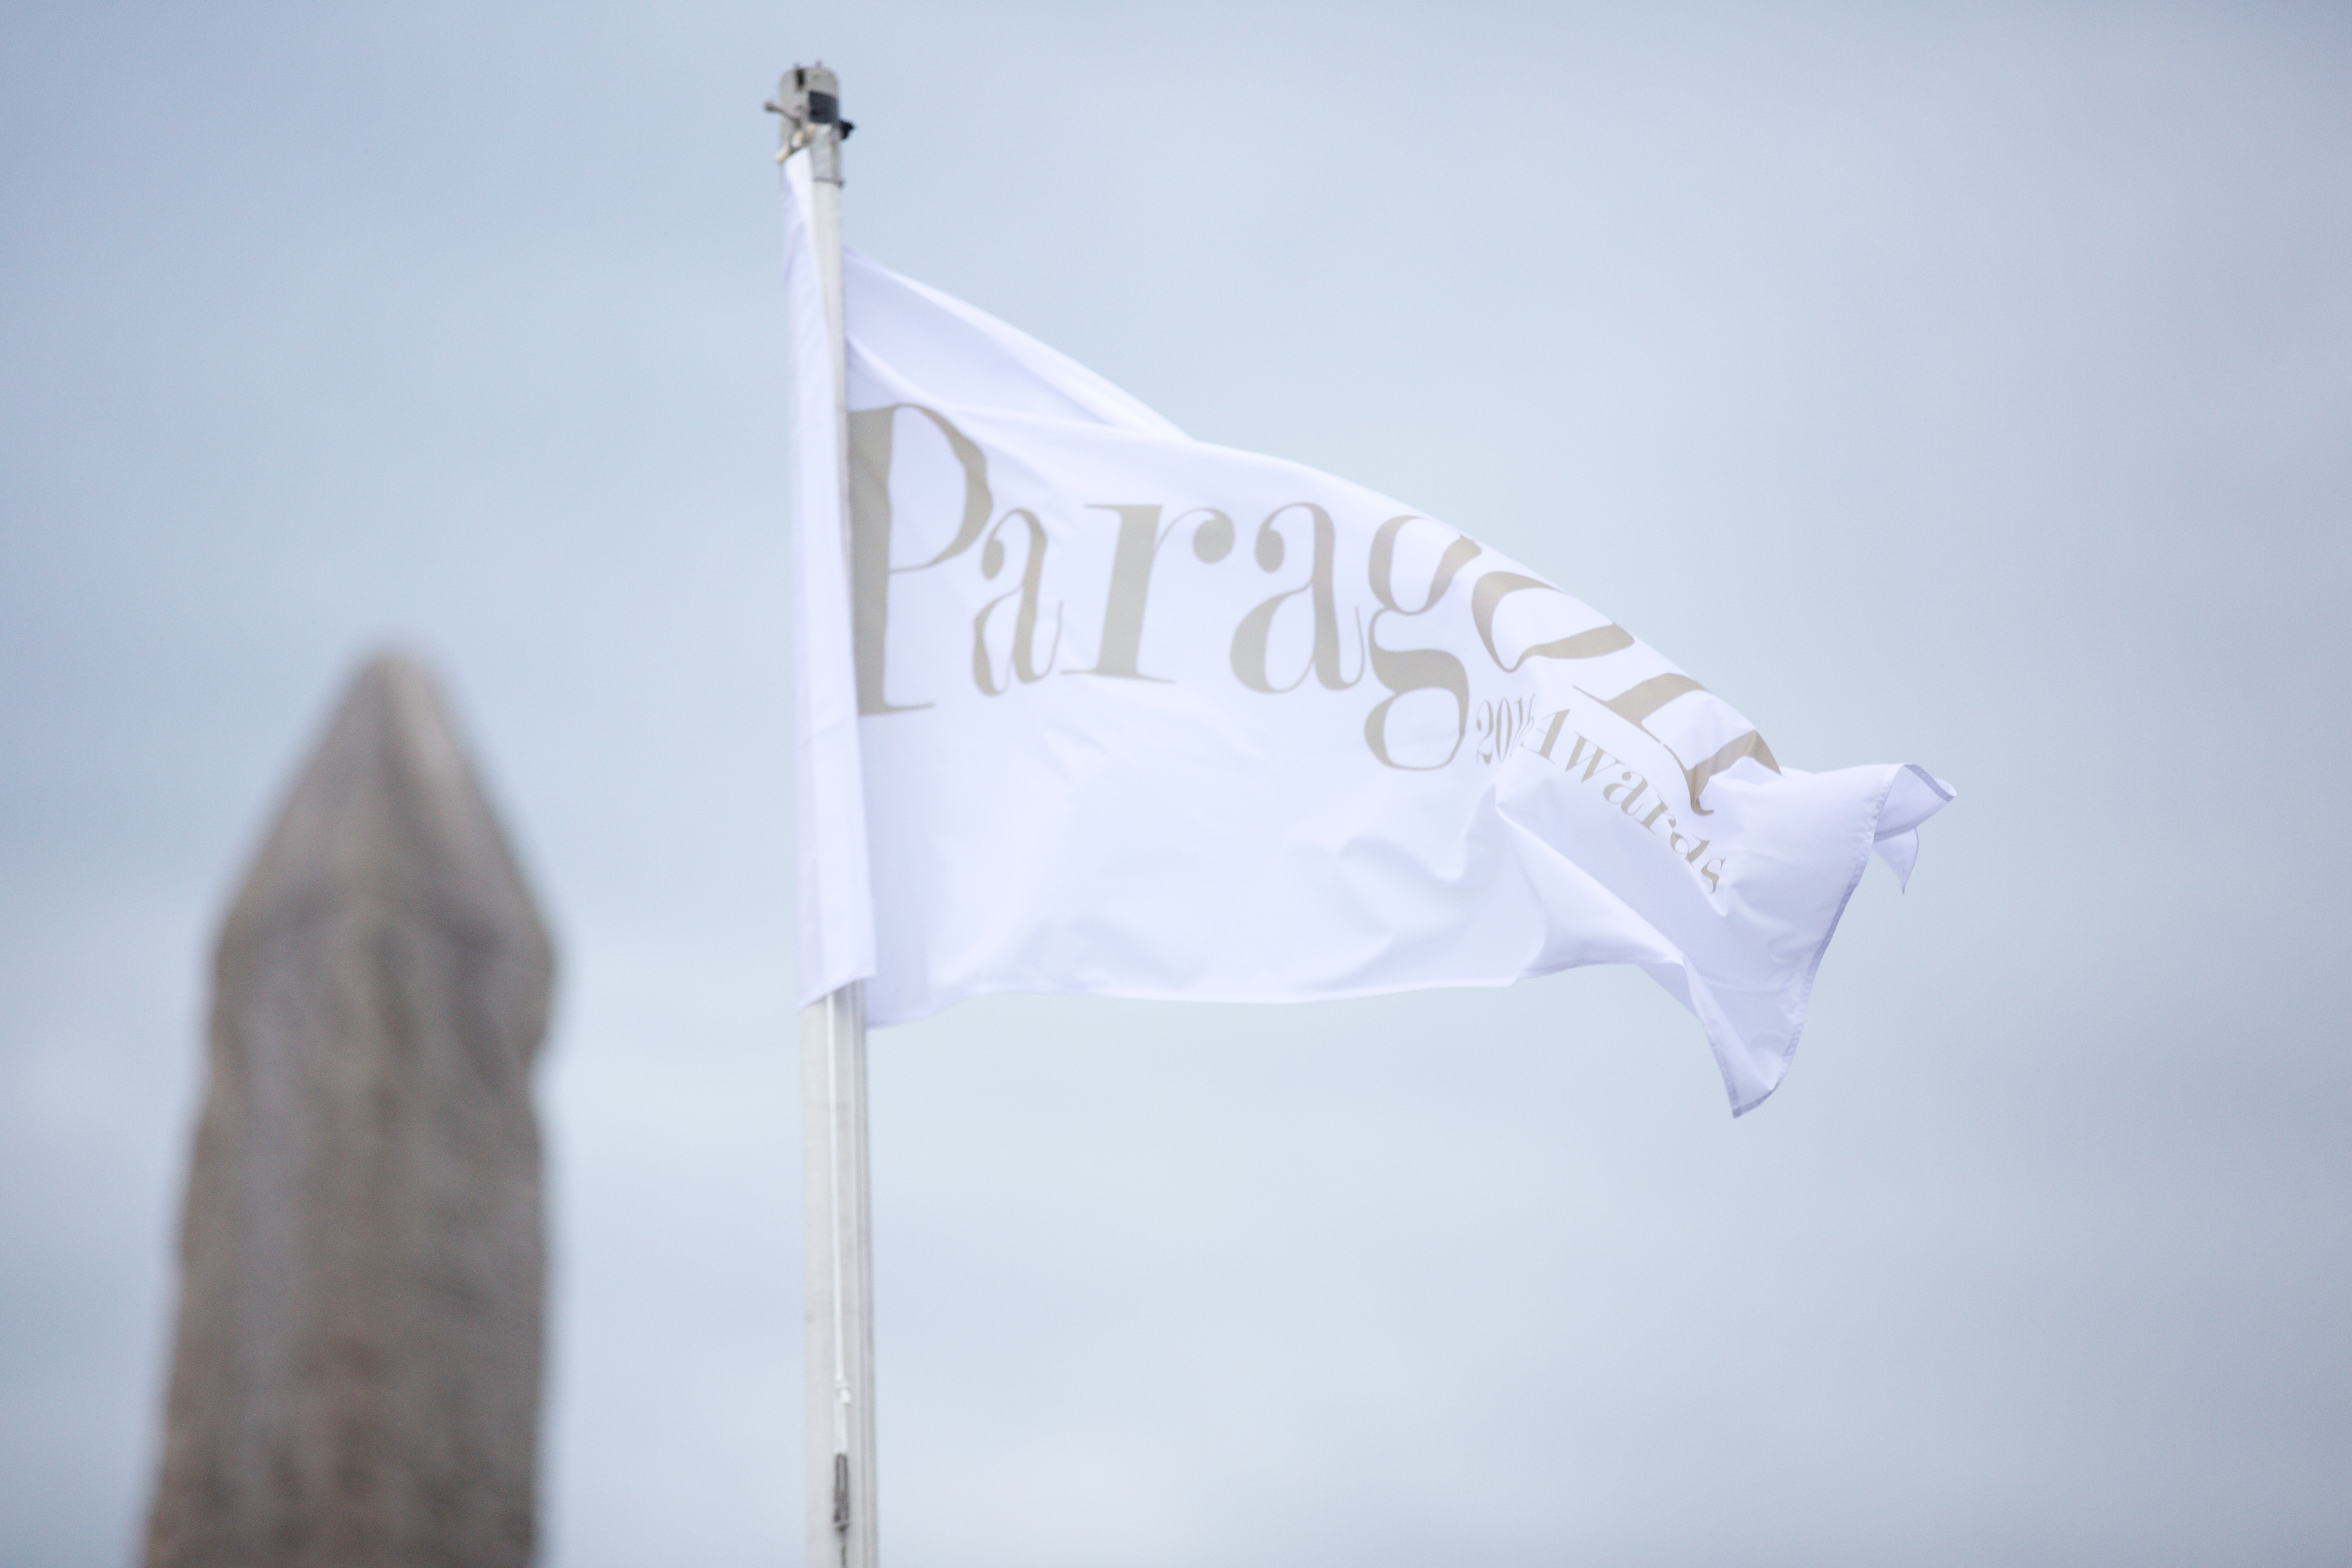 Paragon Awards Flag